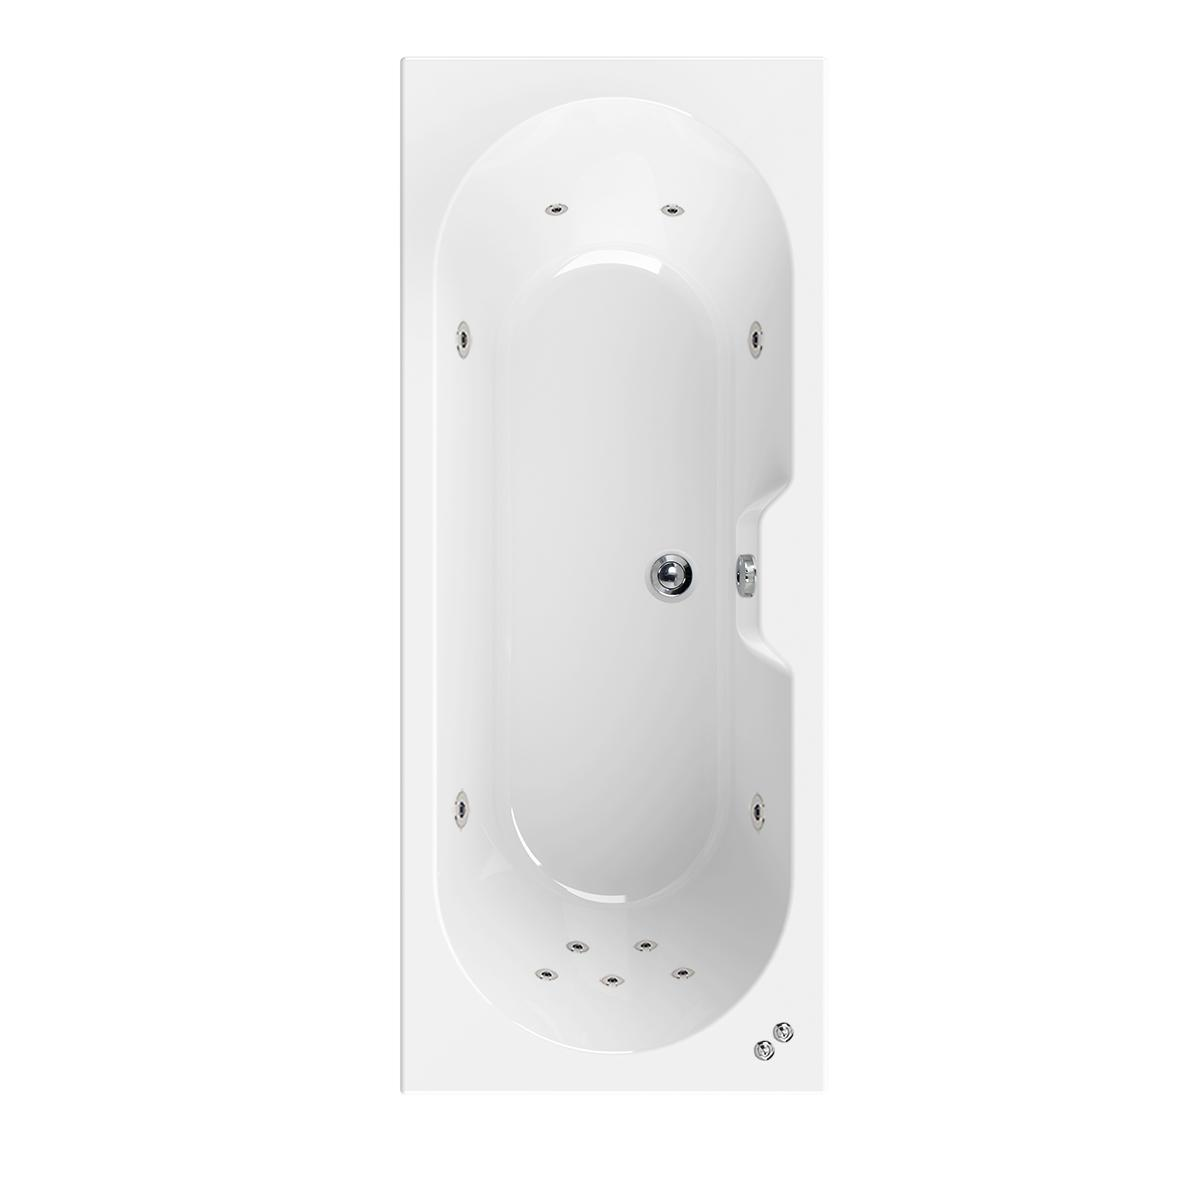 Aquaestil Calisto 11 Jet Whirlpool Bath